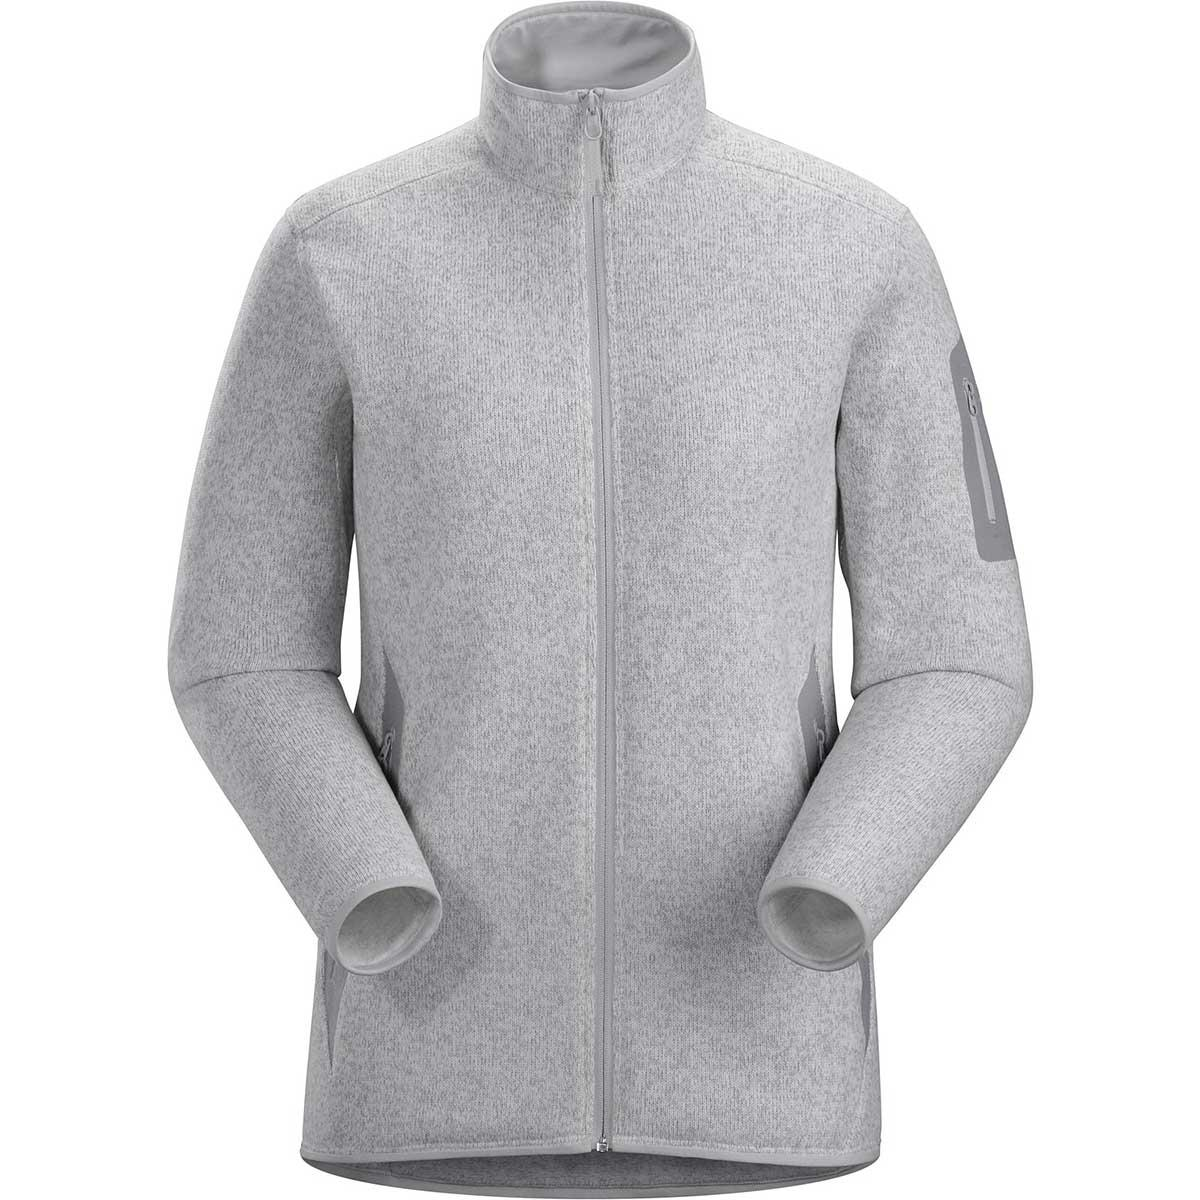 Arcteryx women's Covert Cardigan in Athena Grey Heather front view